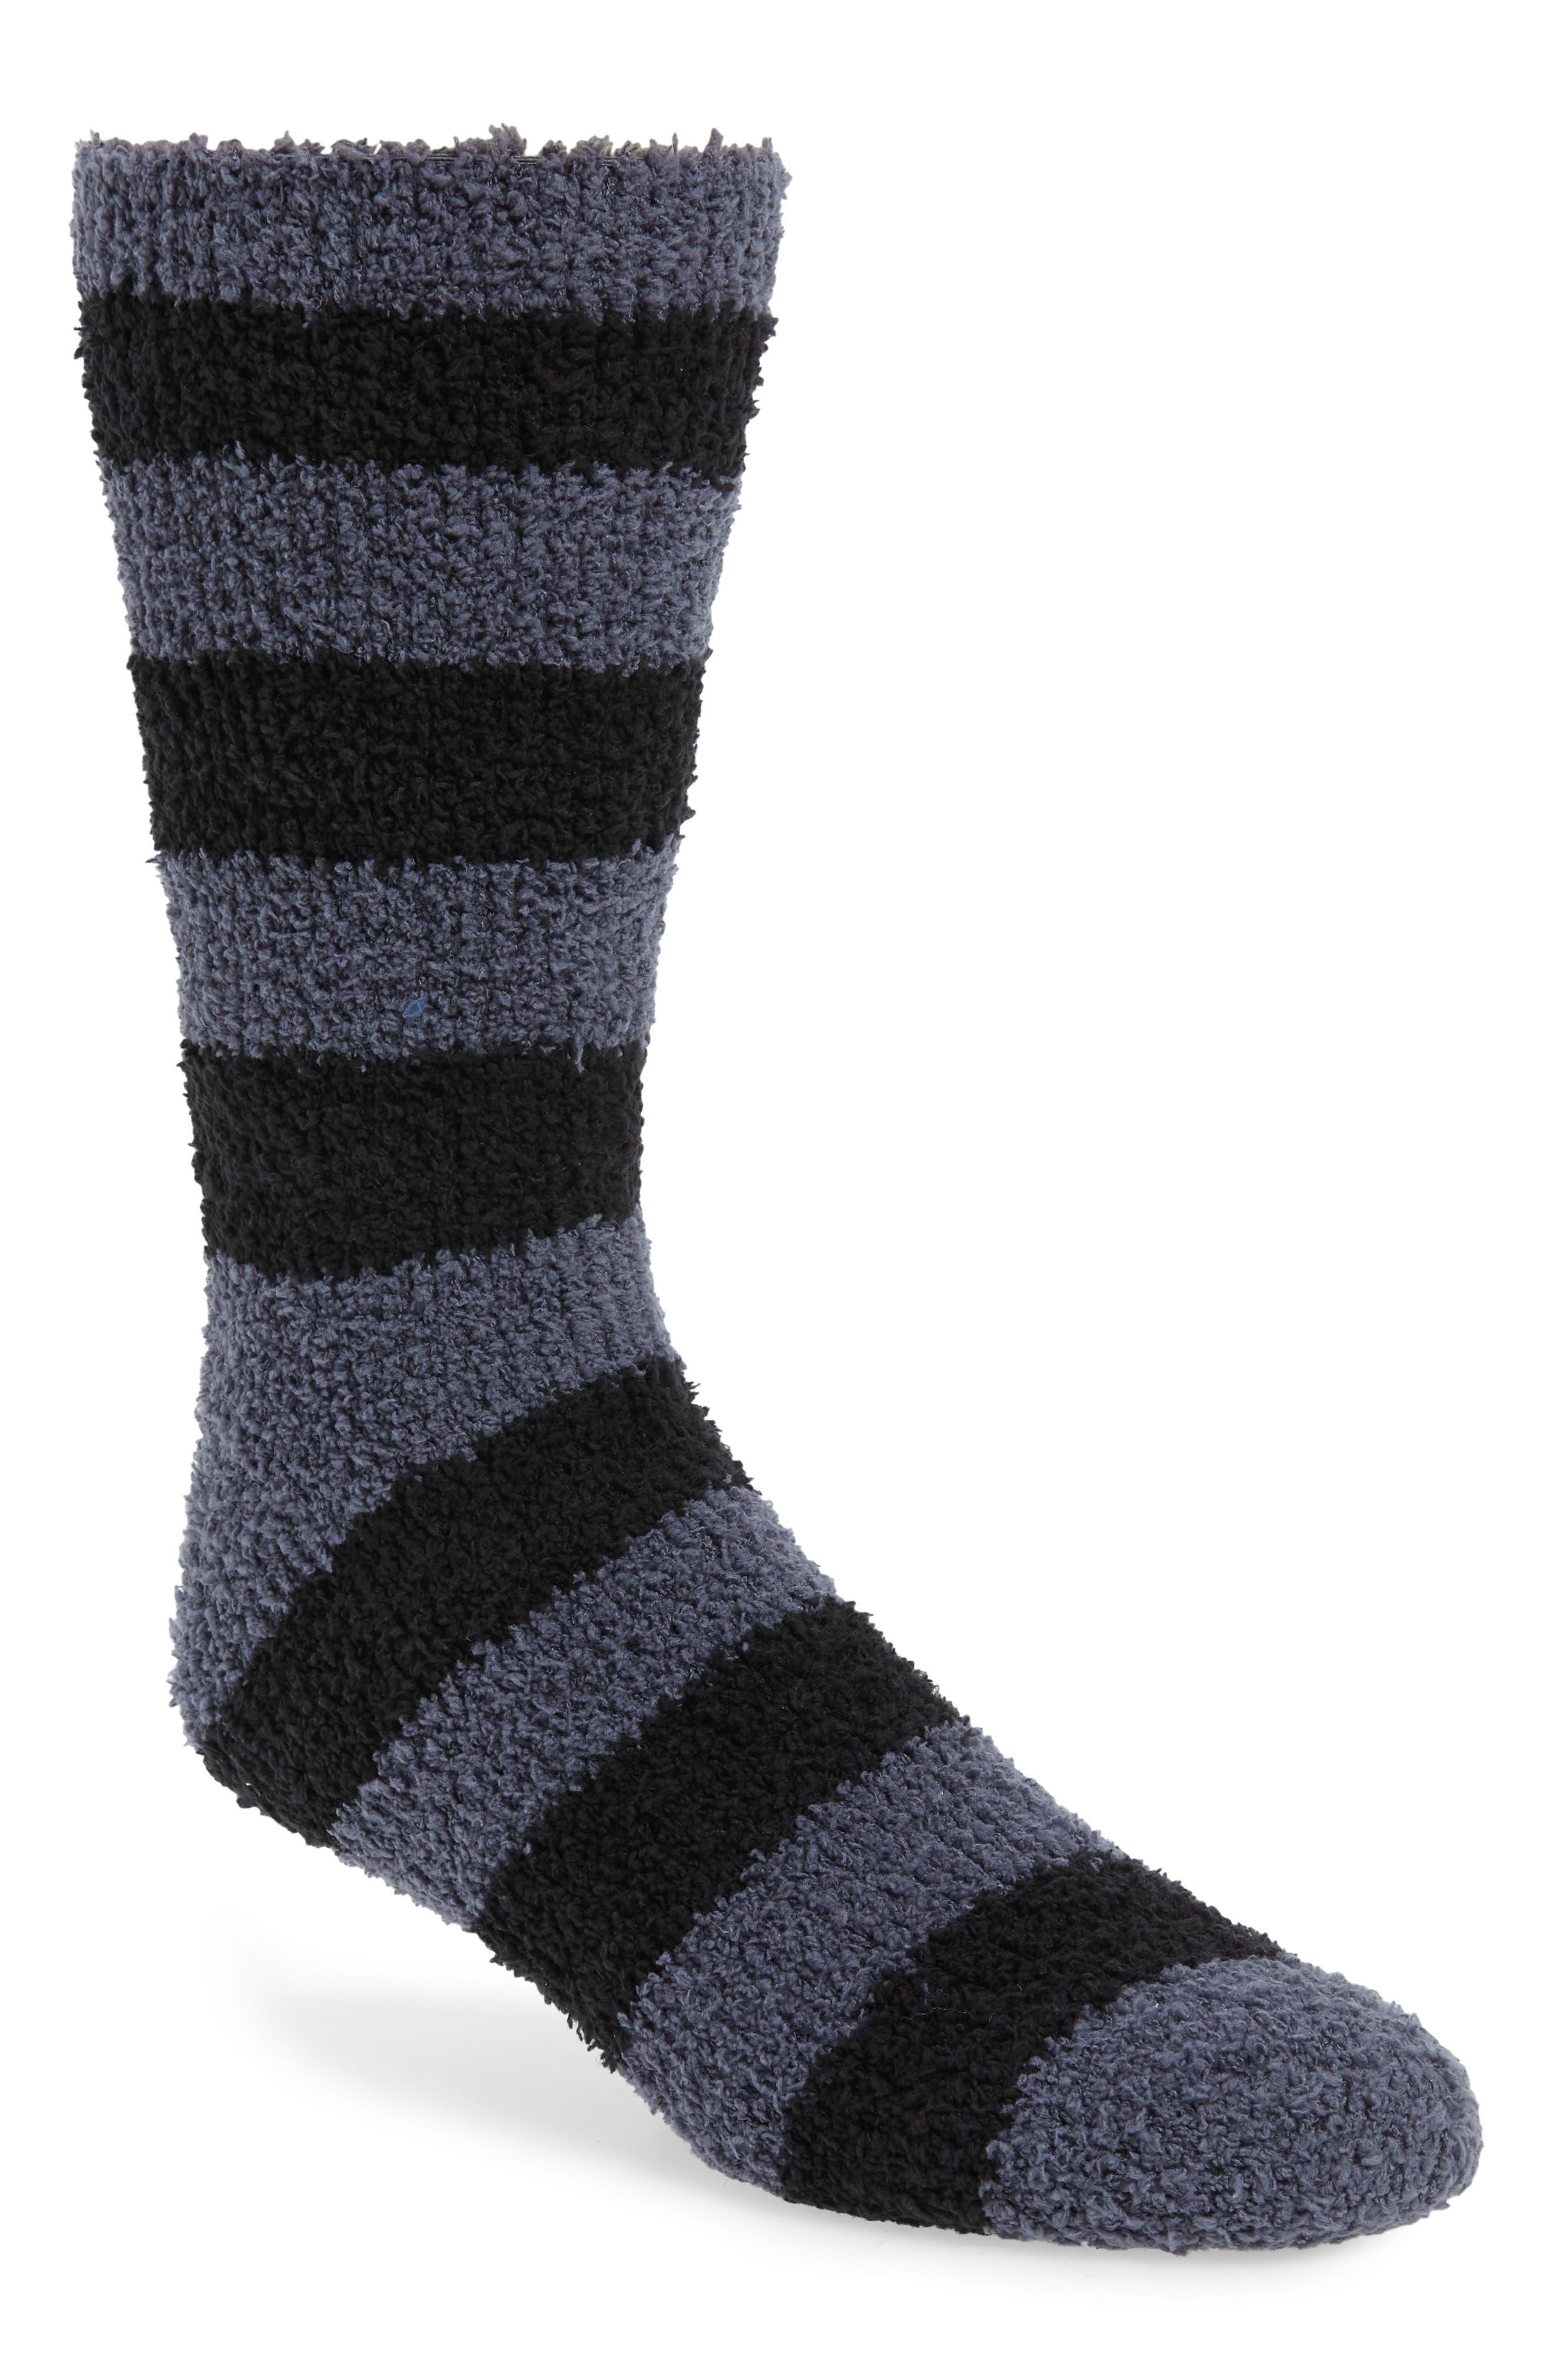 Rugby Stripe Butter Socks,                             Main thumbnail 1, color,                             021